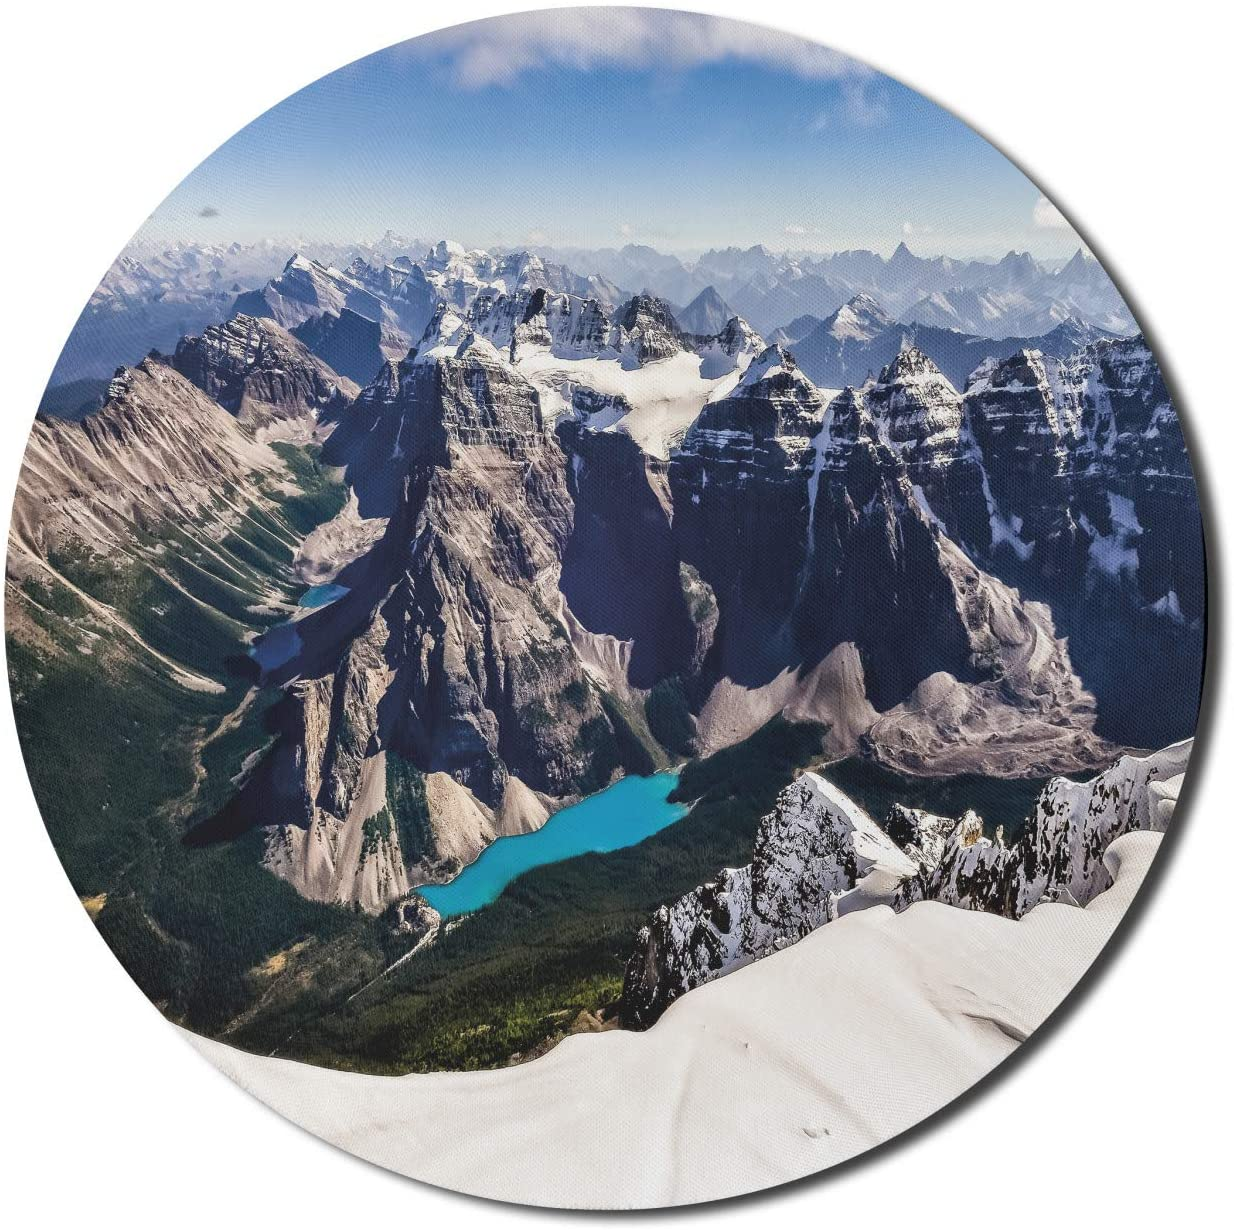 Lunarable Outdoor Mouse Pad for Computers, Aerial View of Snowy Rocky Mountains and Moraine Lake in Banff National Park, Round Non-Slip Thick Rubber Modern Gaming Mousepad, 8